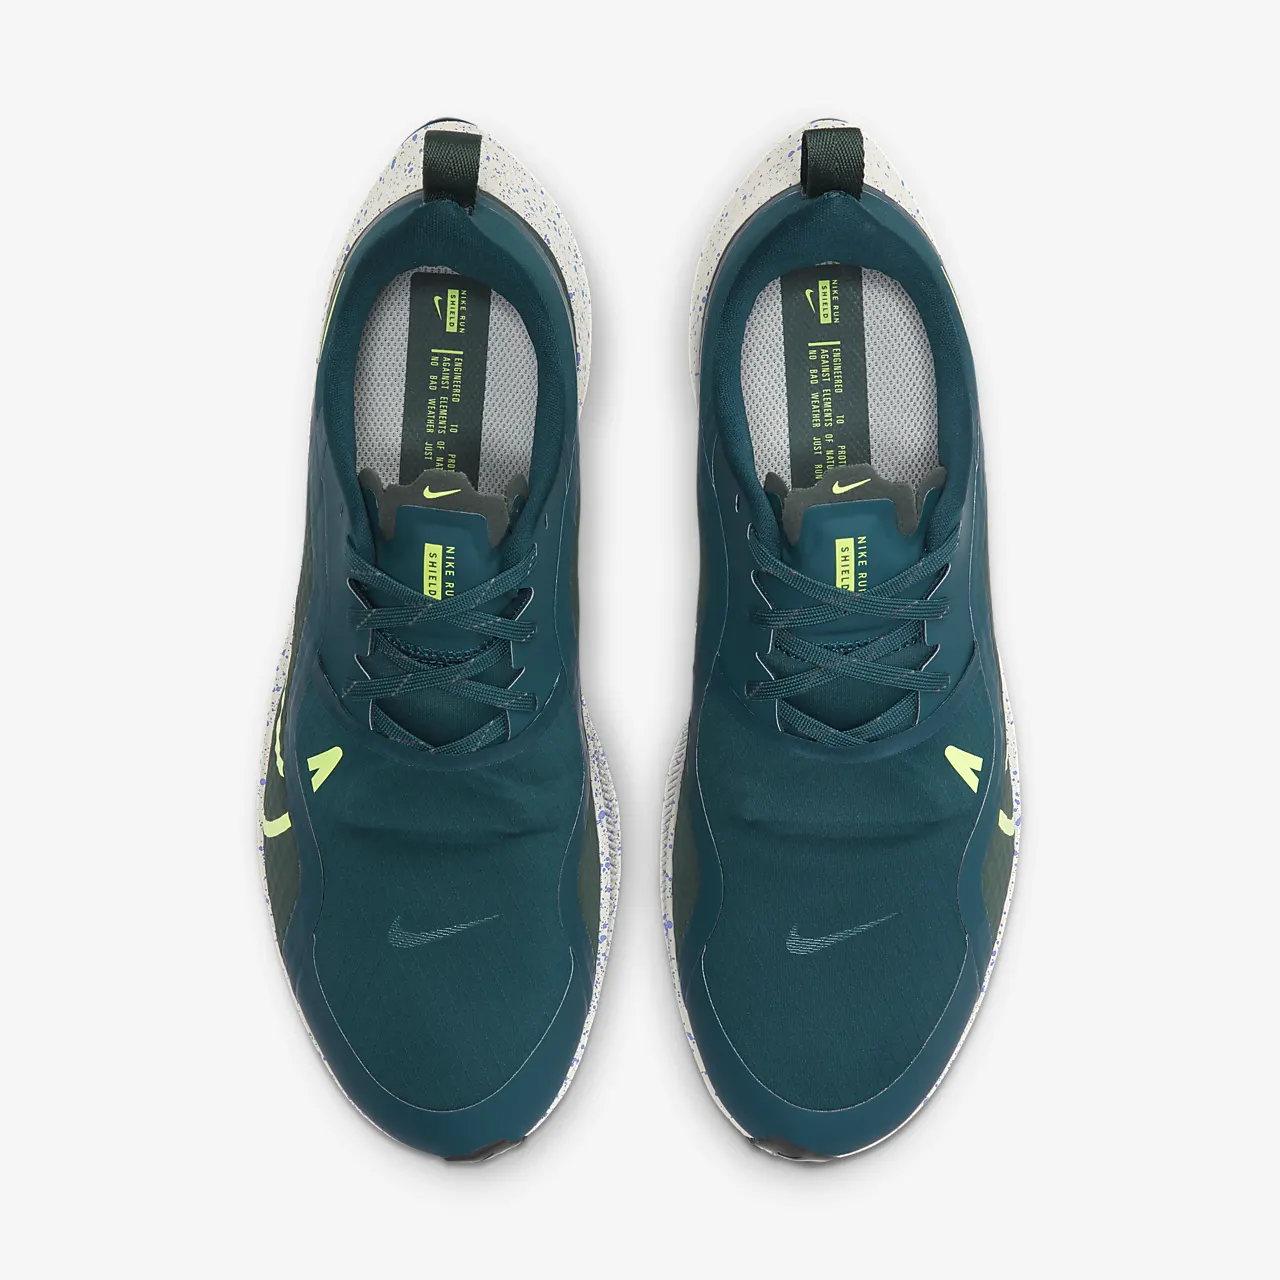 유럽직배송 나이키 NIKE Nike Air Zoom Pegasus 37 Shield Men's Running Shoe CQ7935-300